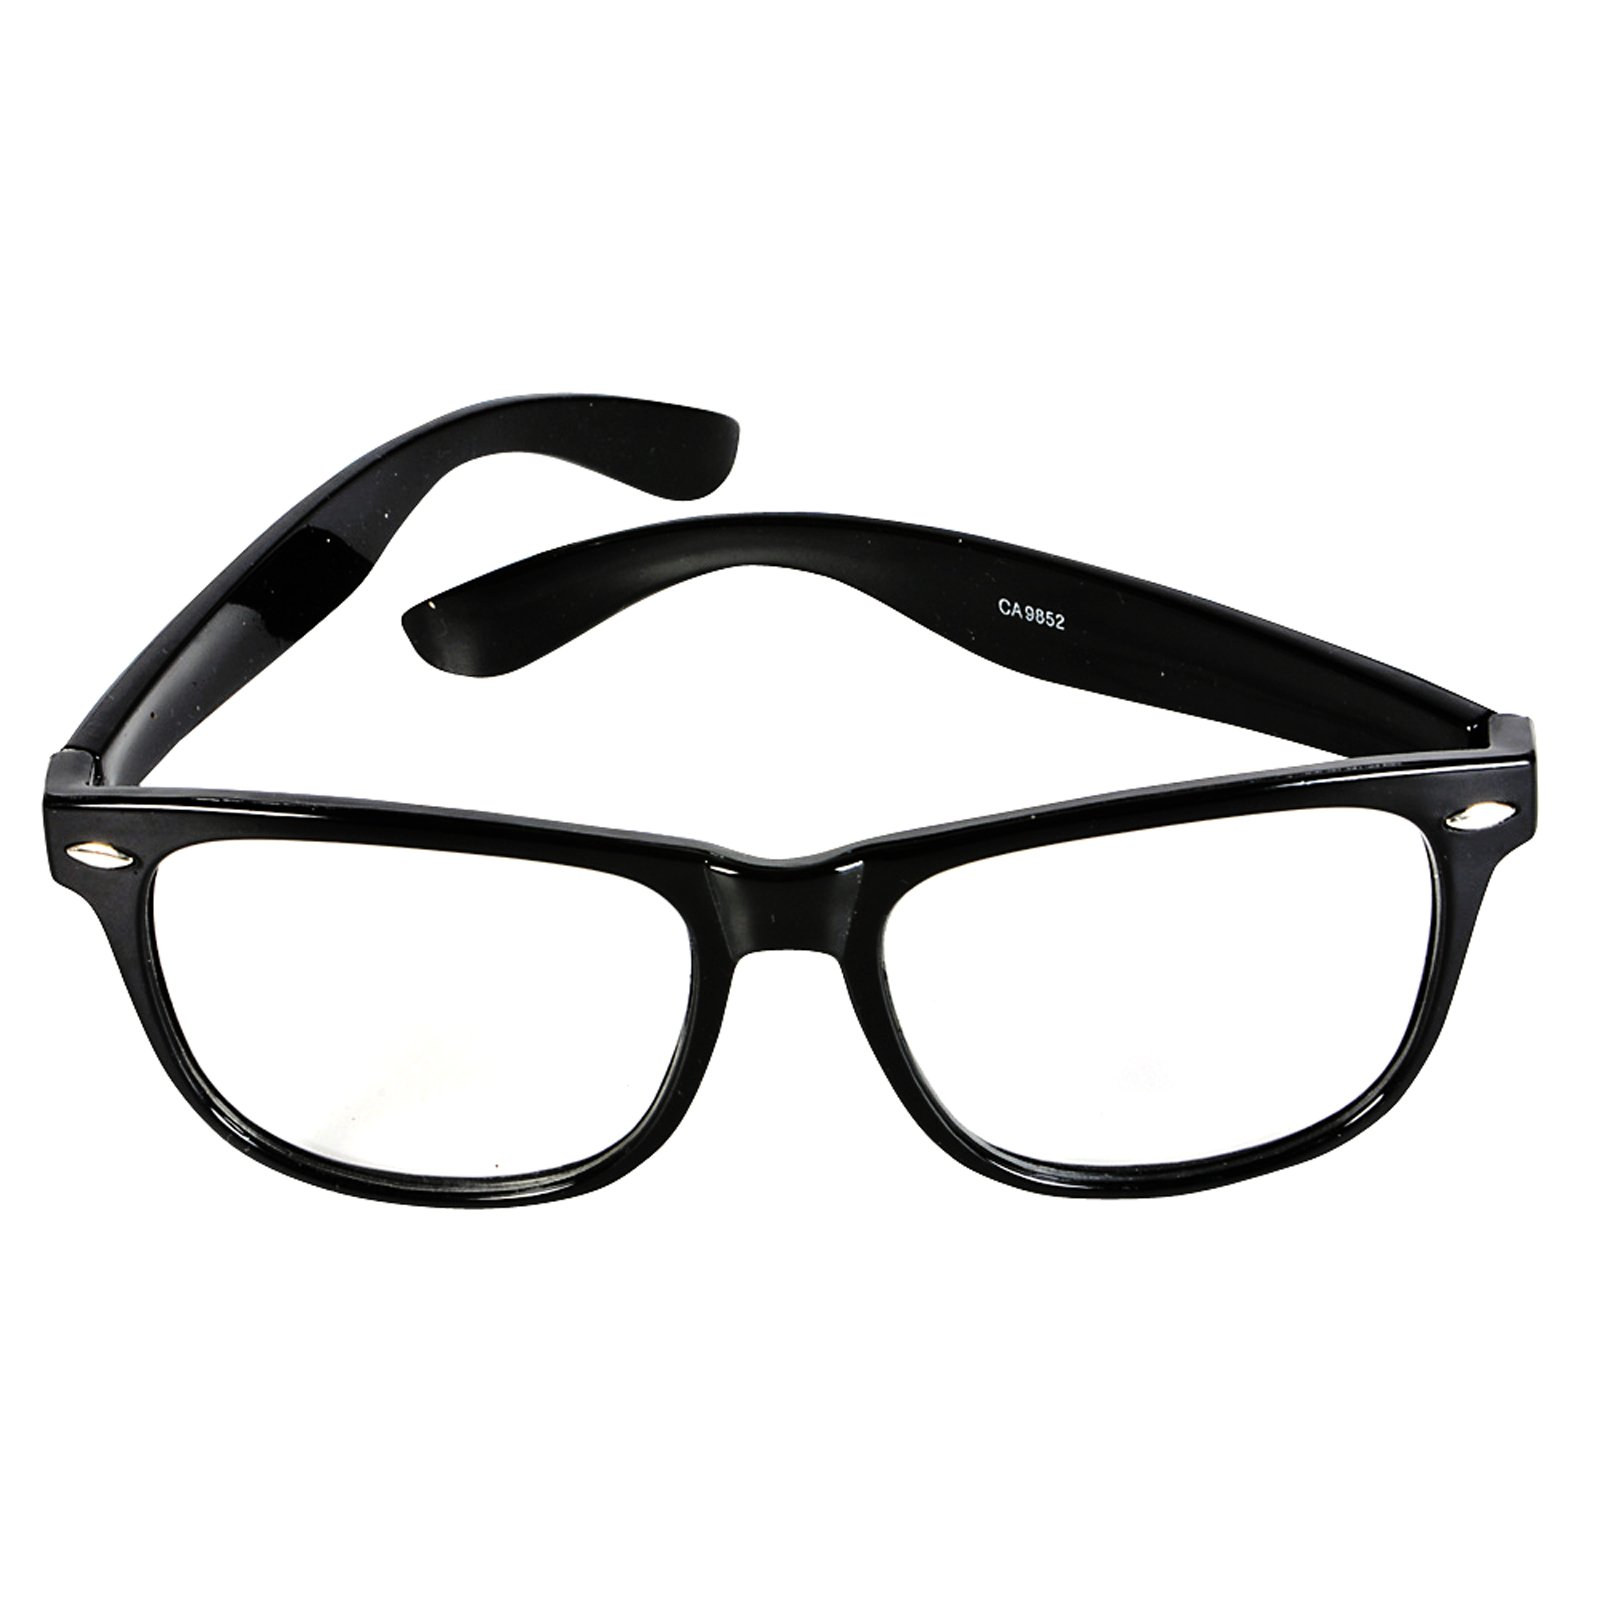 1600x1600 Goggle Eye Glasses Clip Art